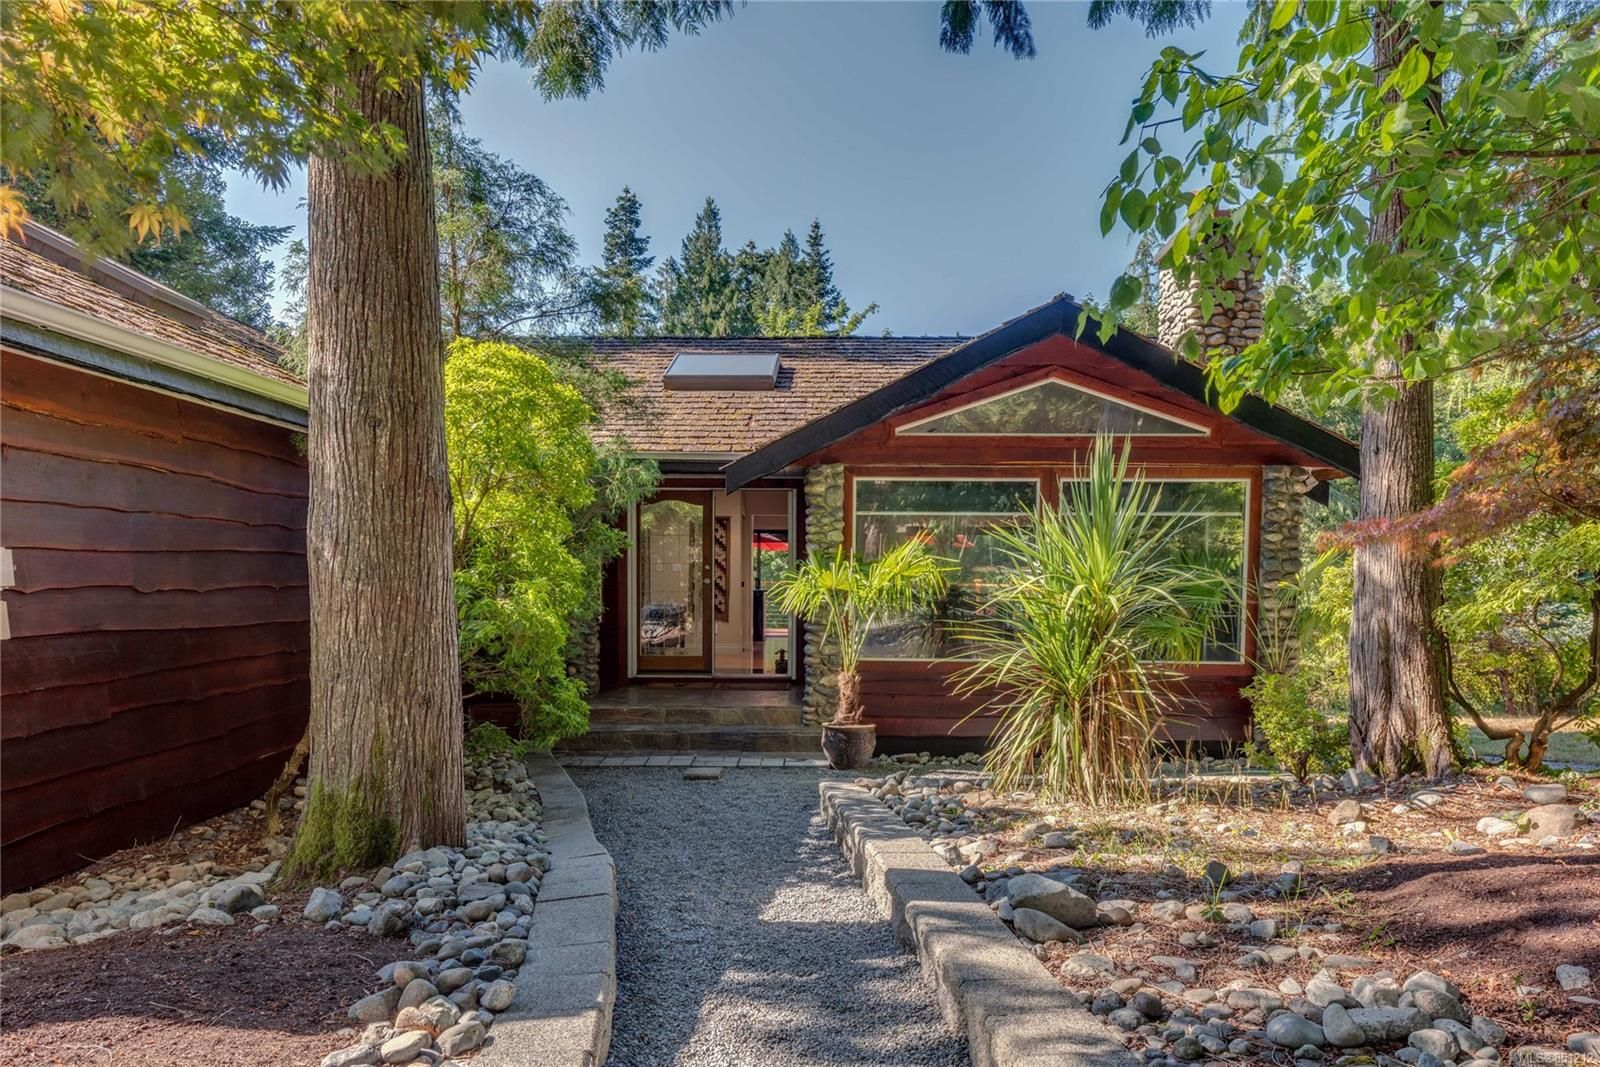 Main Photo: 471 Green Mountain Rd in : SW Prospect Lake House for sale (Saanich West)  : MLS®# 851212